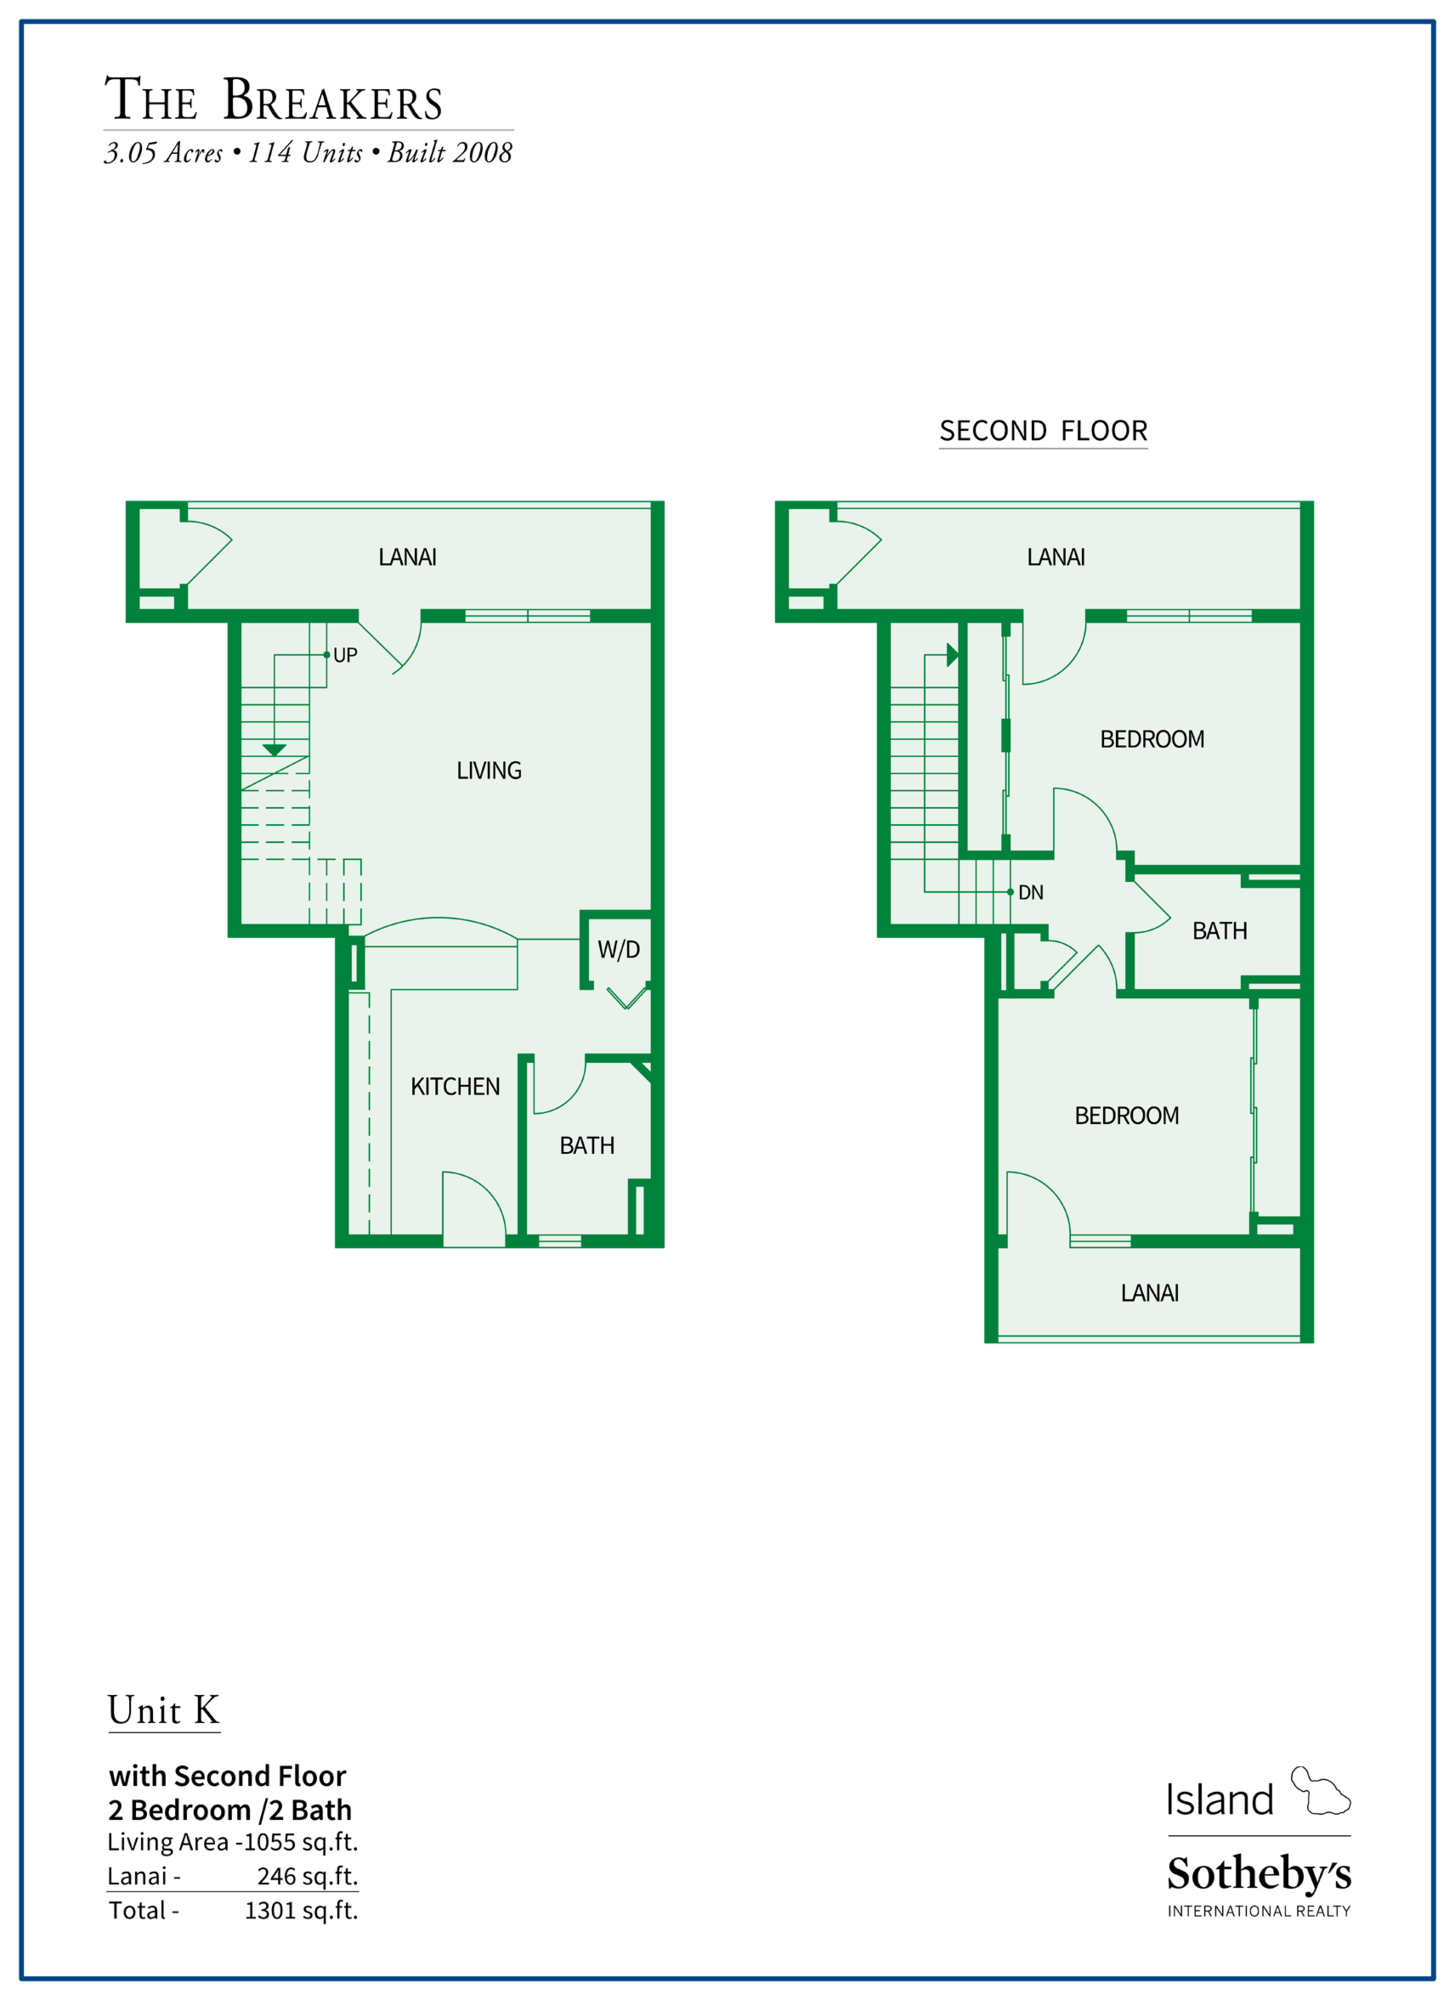 The Breakers Maui Floor Plan K